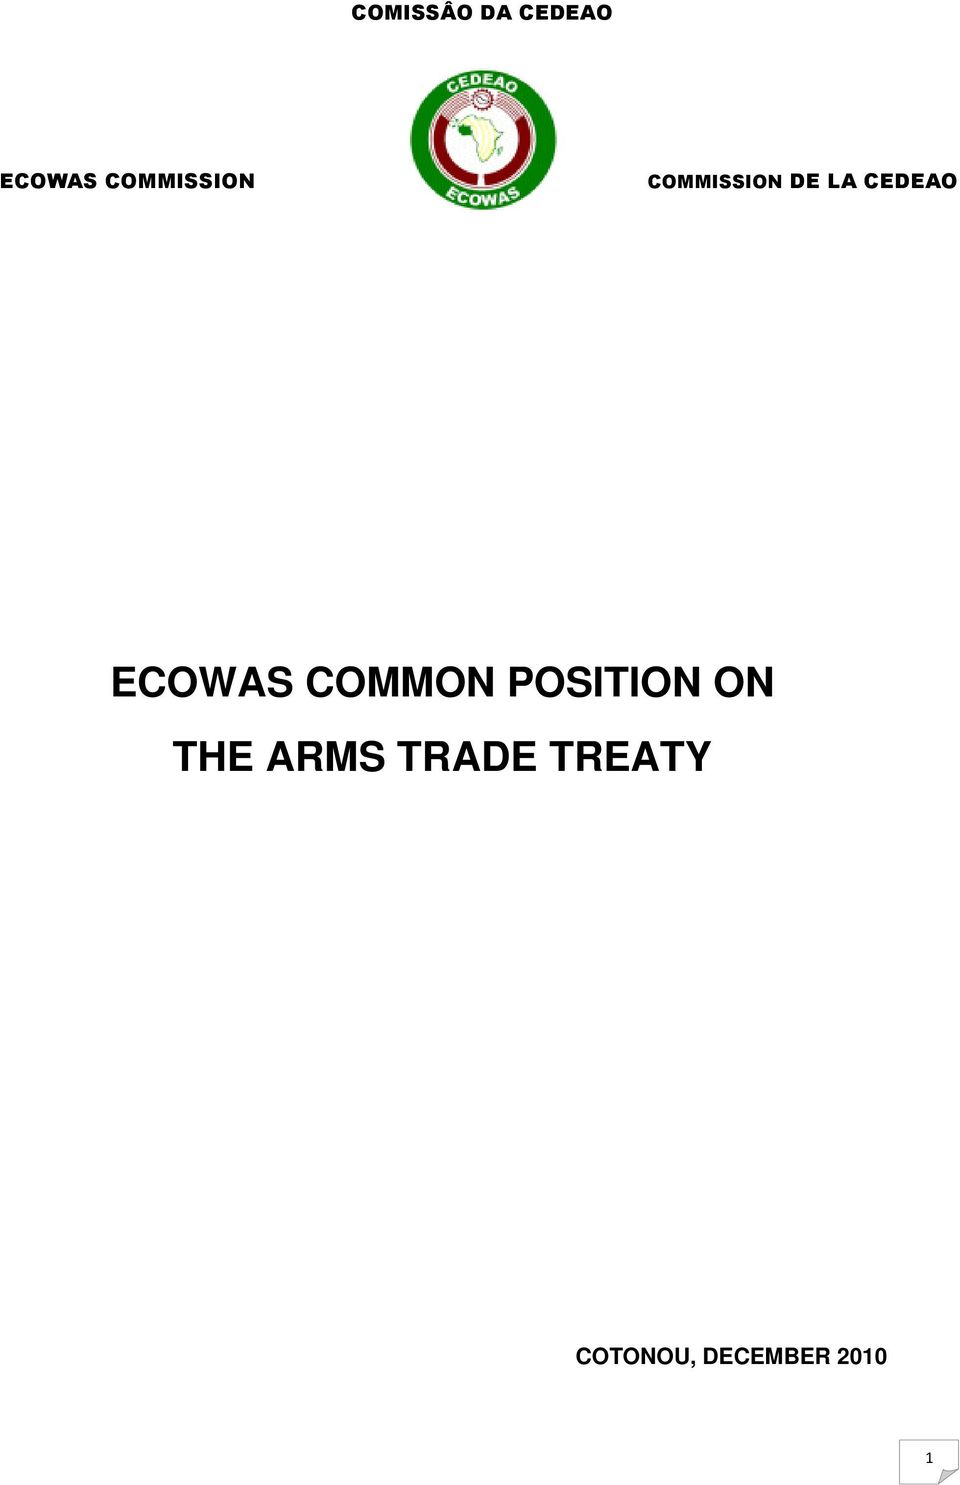 CEDEAO ECOWAS COMMON POSITION ON